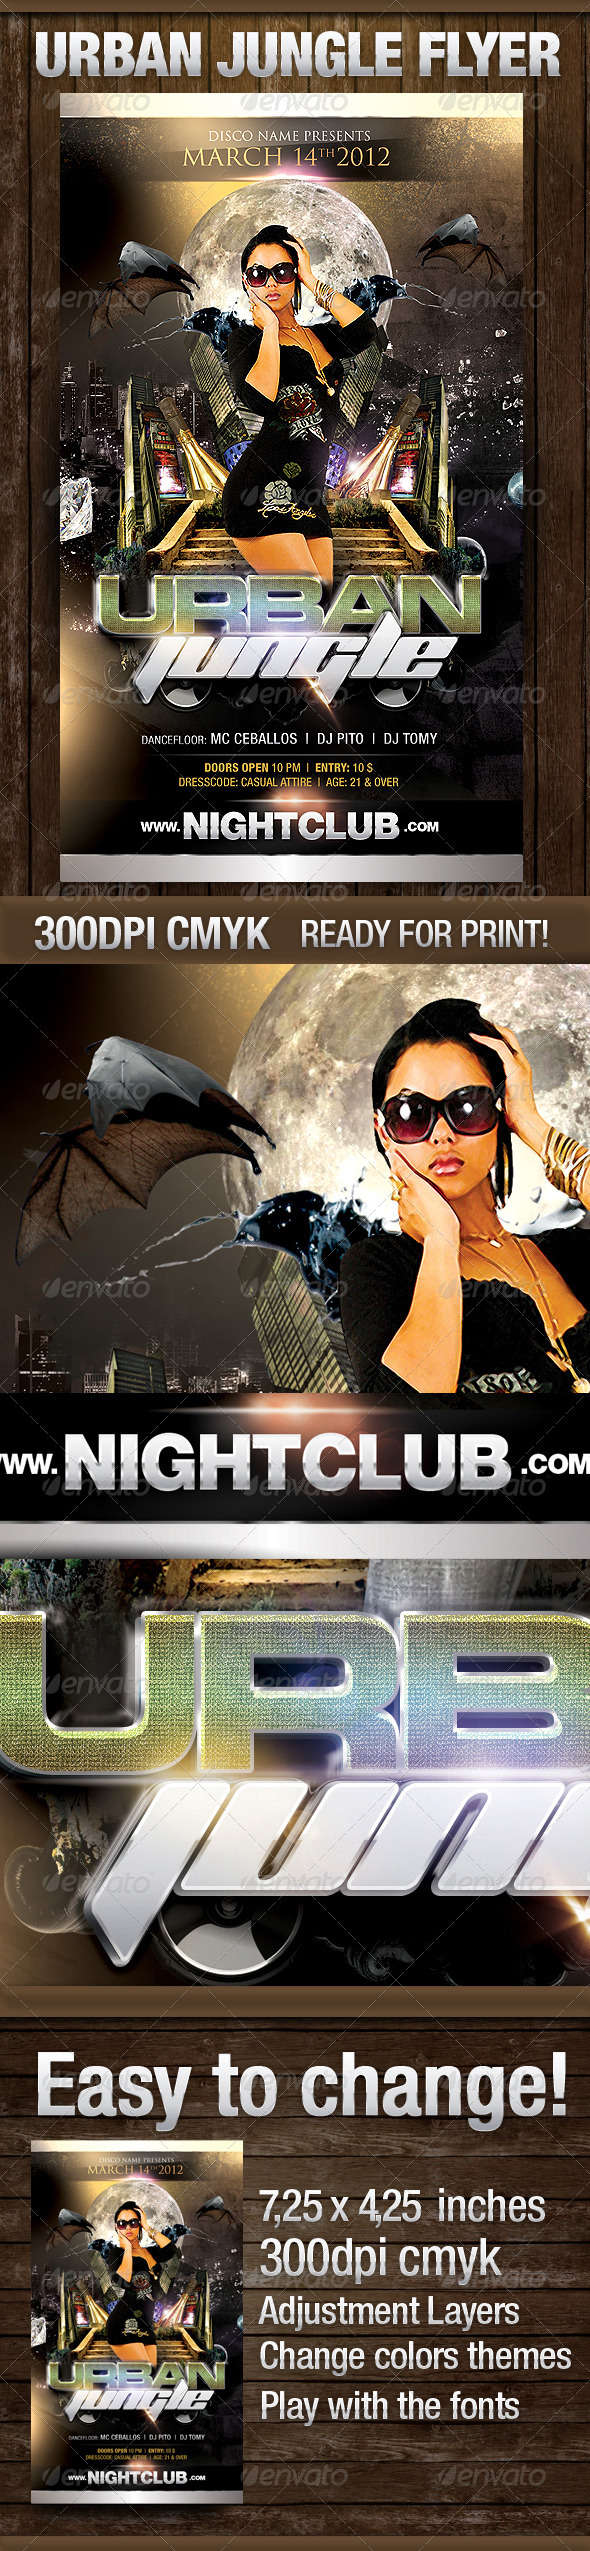 Urban Jungle Flyer - Clubs & Parties Events